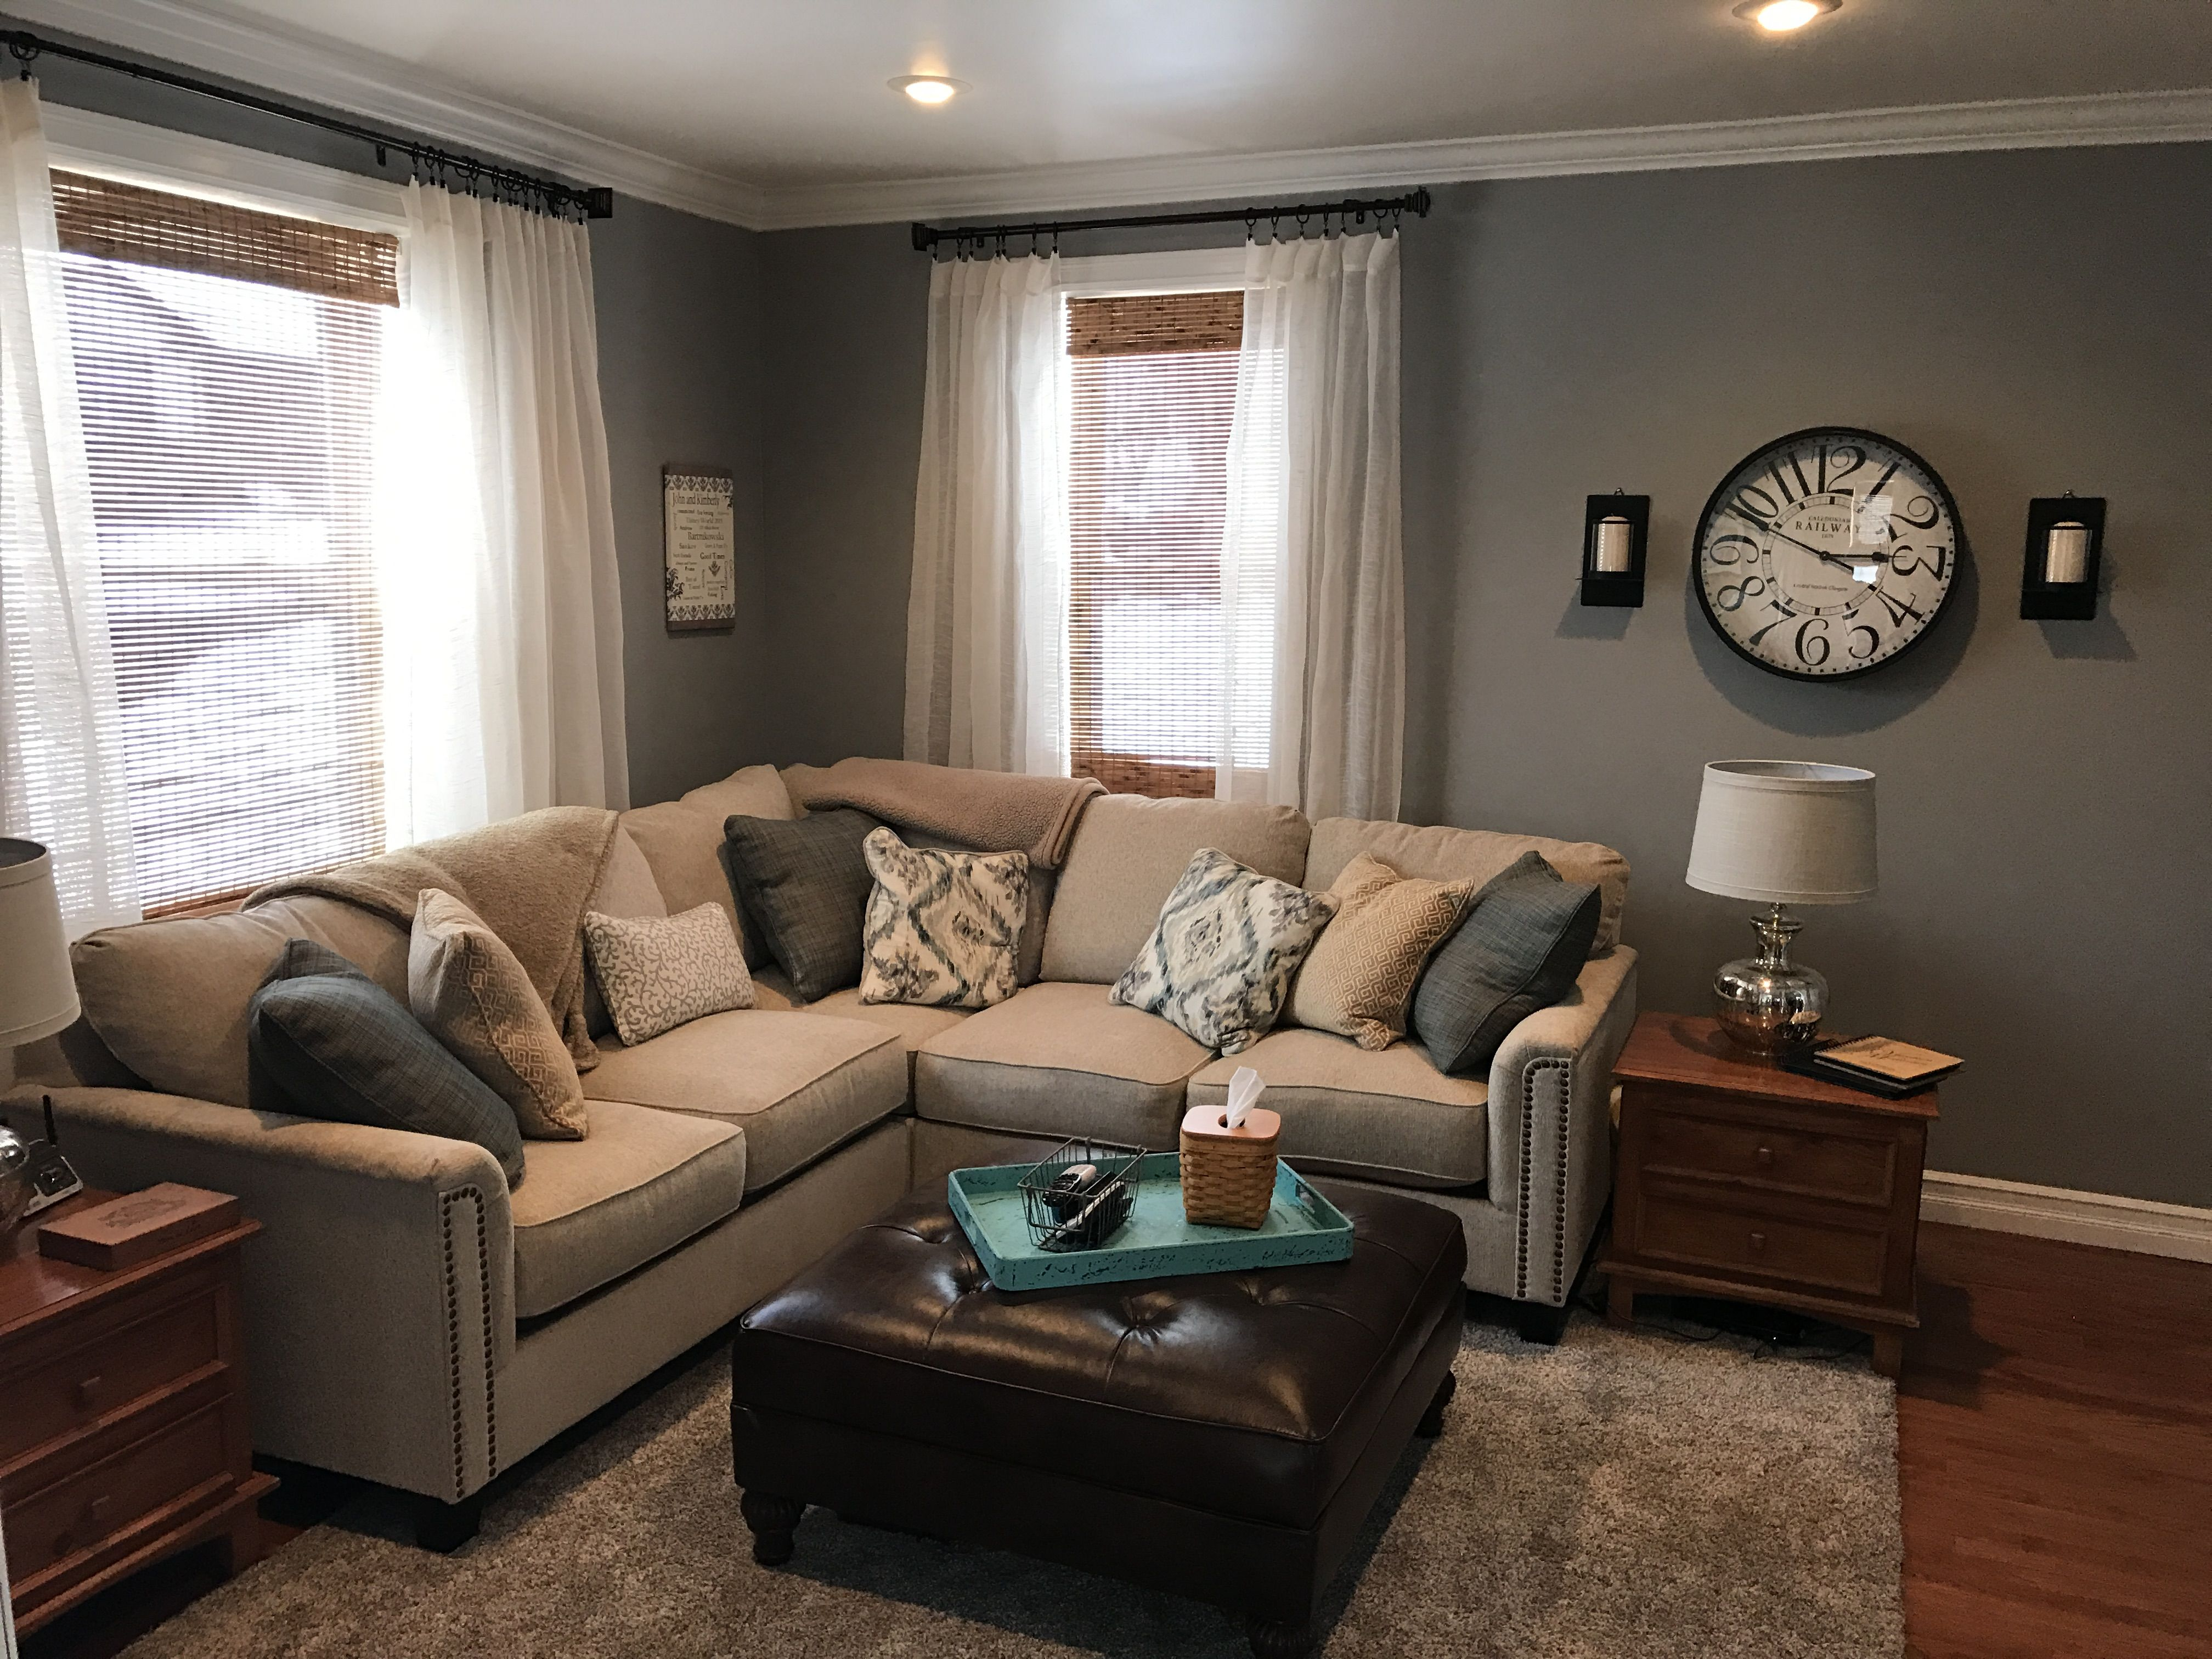 Behr Downtown Gray, cream couch